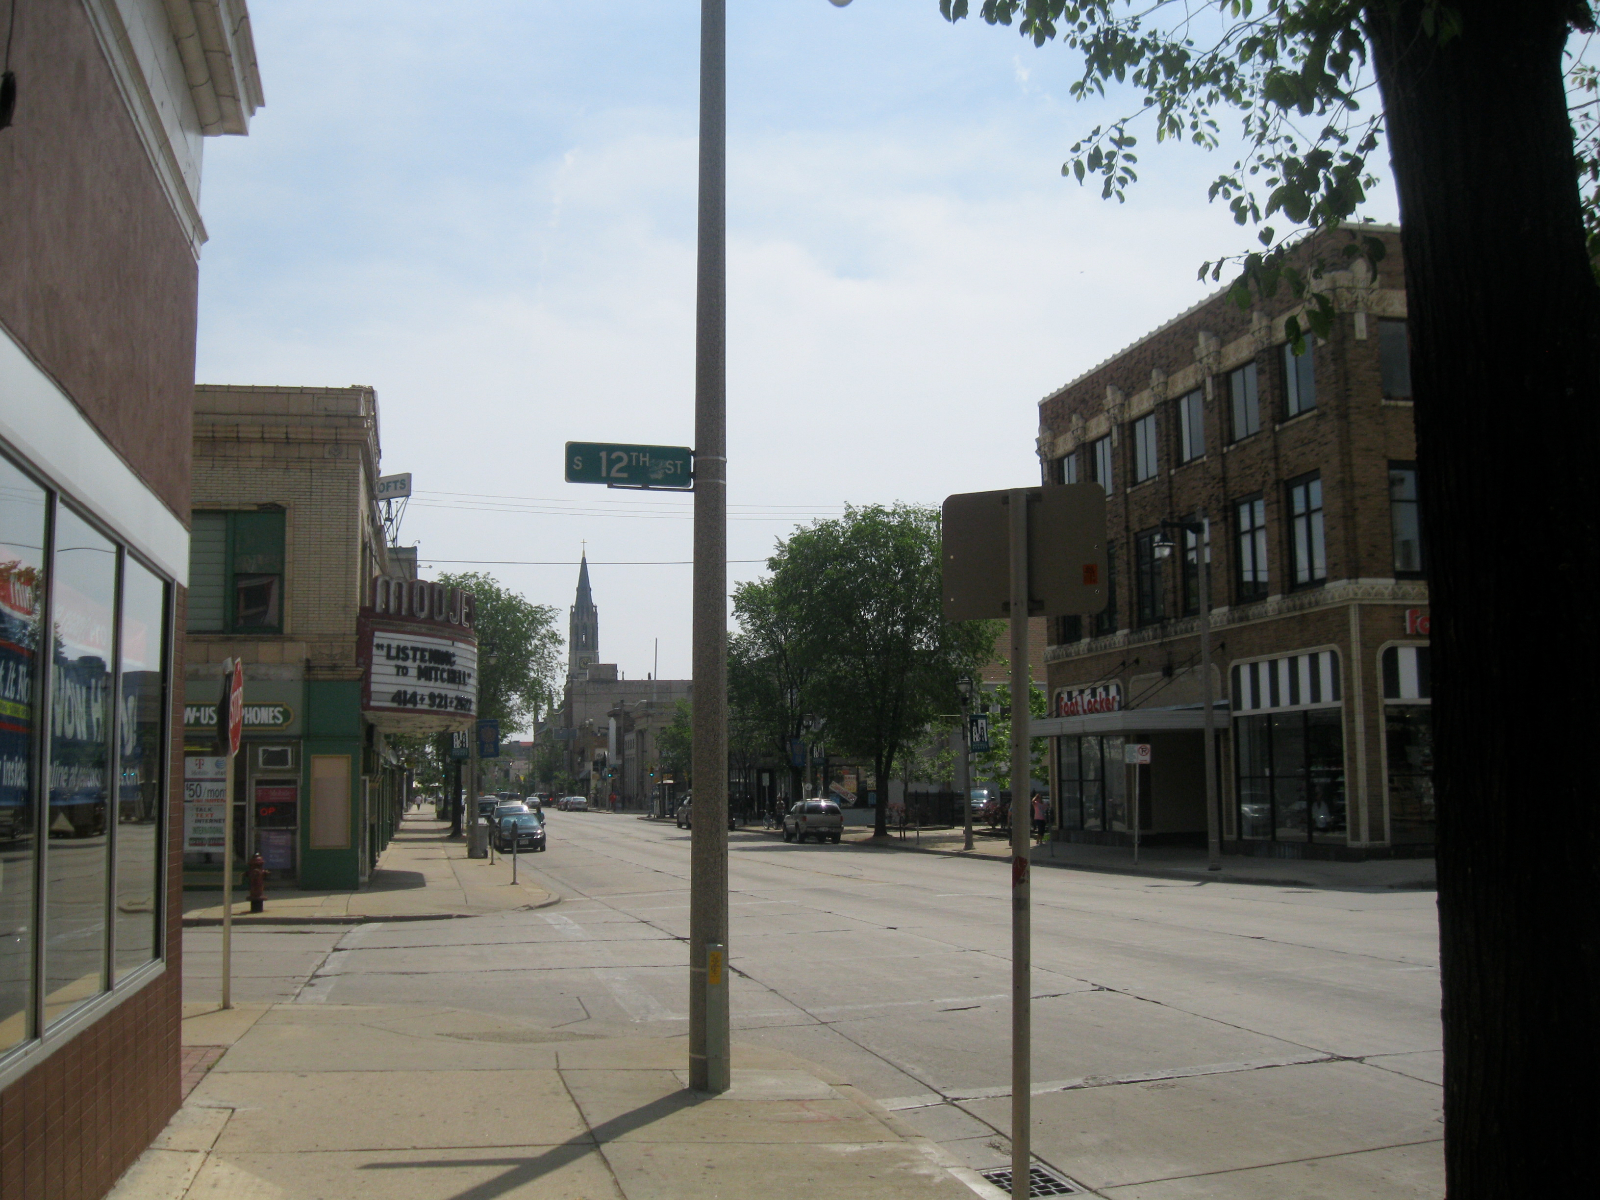 Intersection of 12th and Mitchell streets.